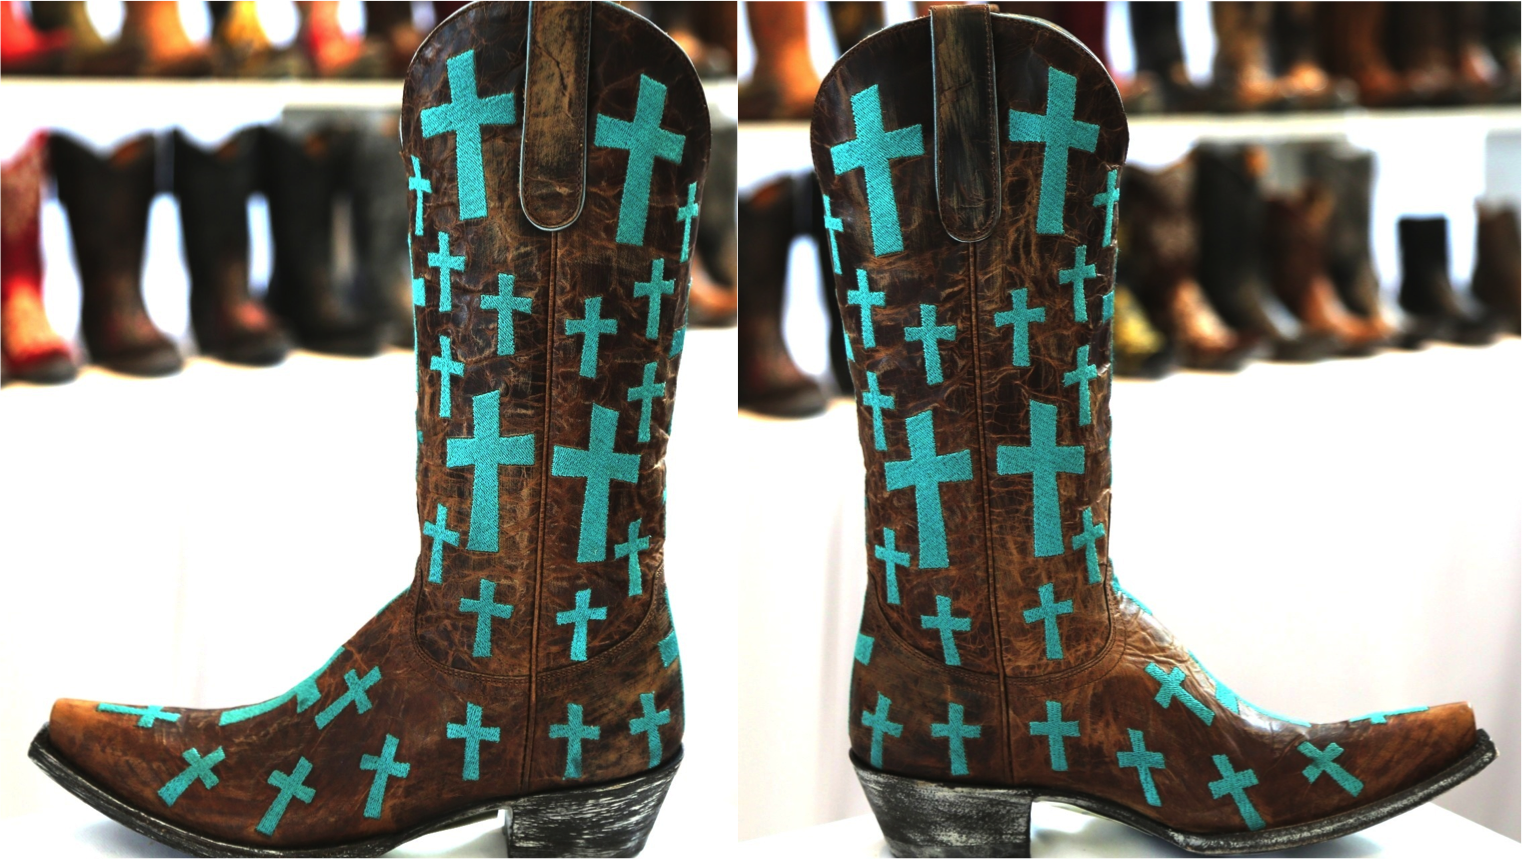 Old Gringo Boots Oh My God Turquoise L1656-1